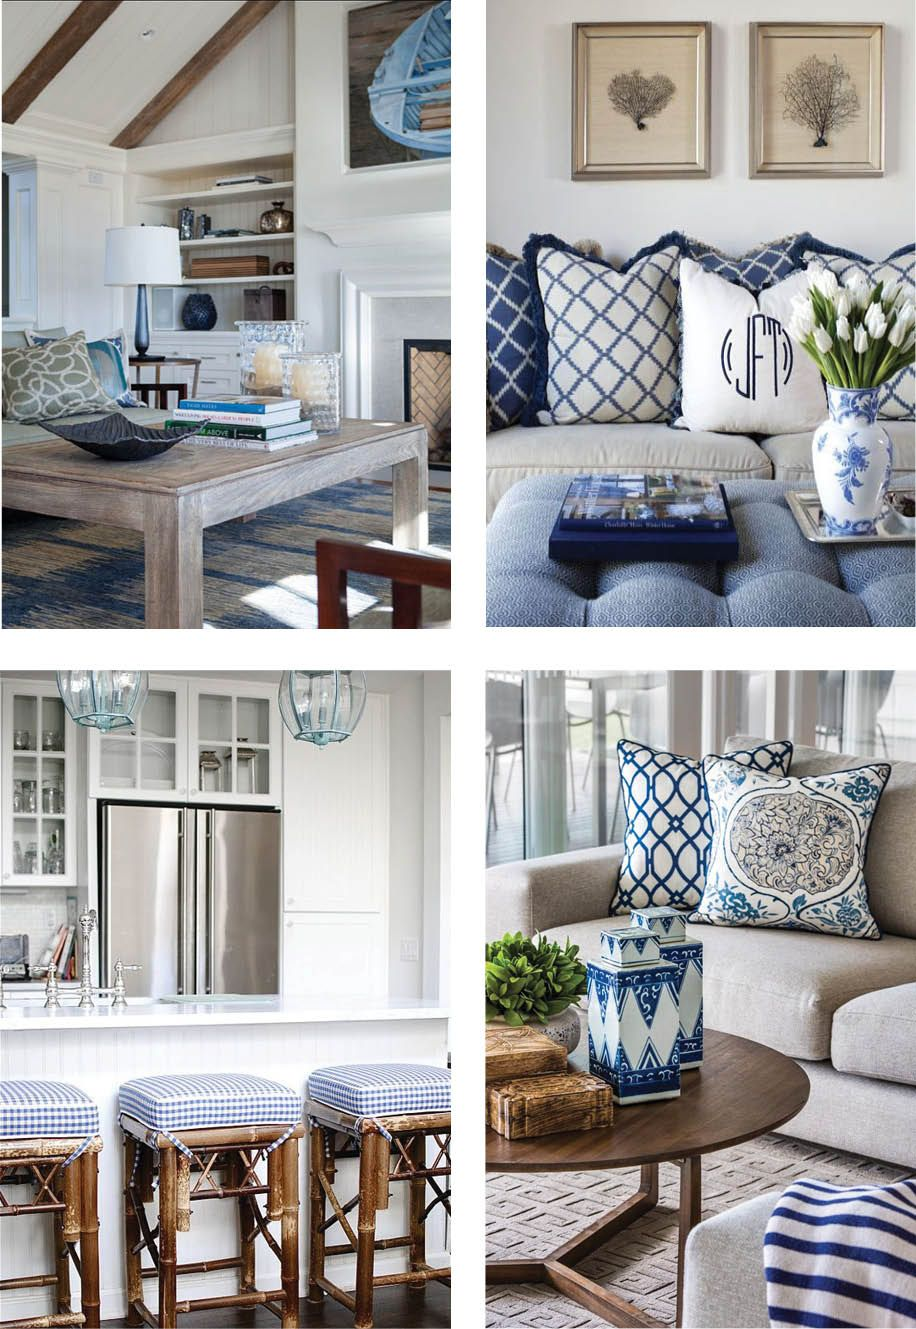 coastal style hamptons style chic in blue hamptons style pinterest wohnzimmer maritim. Black Bedroom Furniture Sets. Home Design Ideas